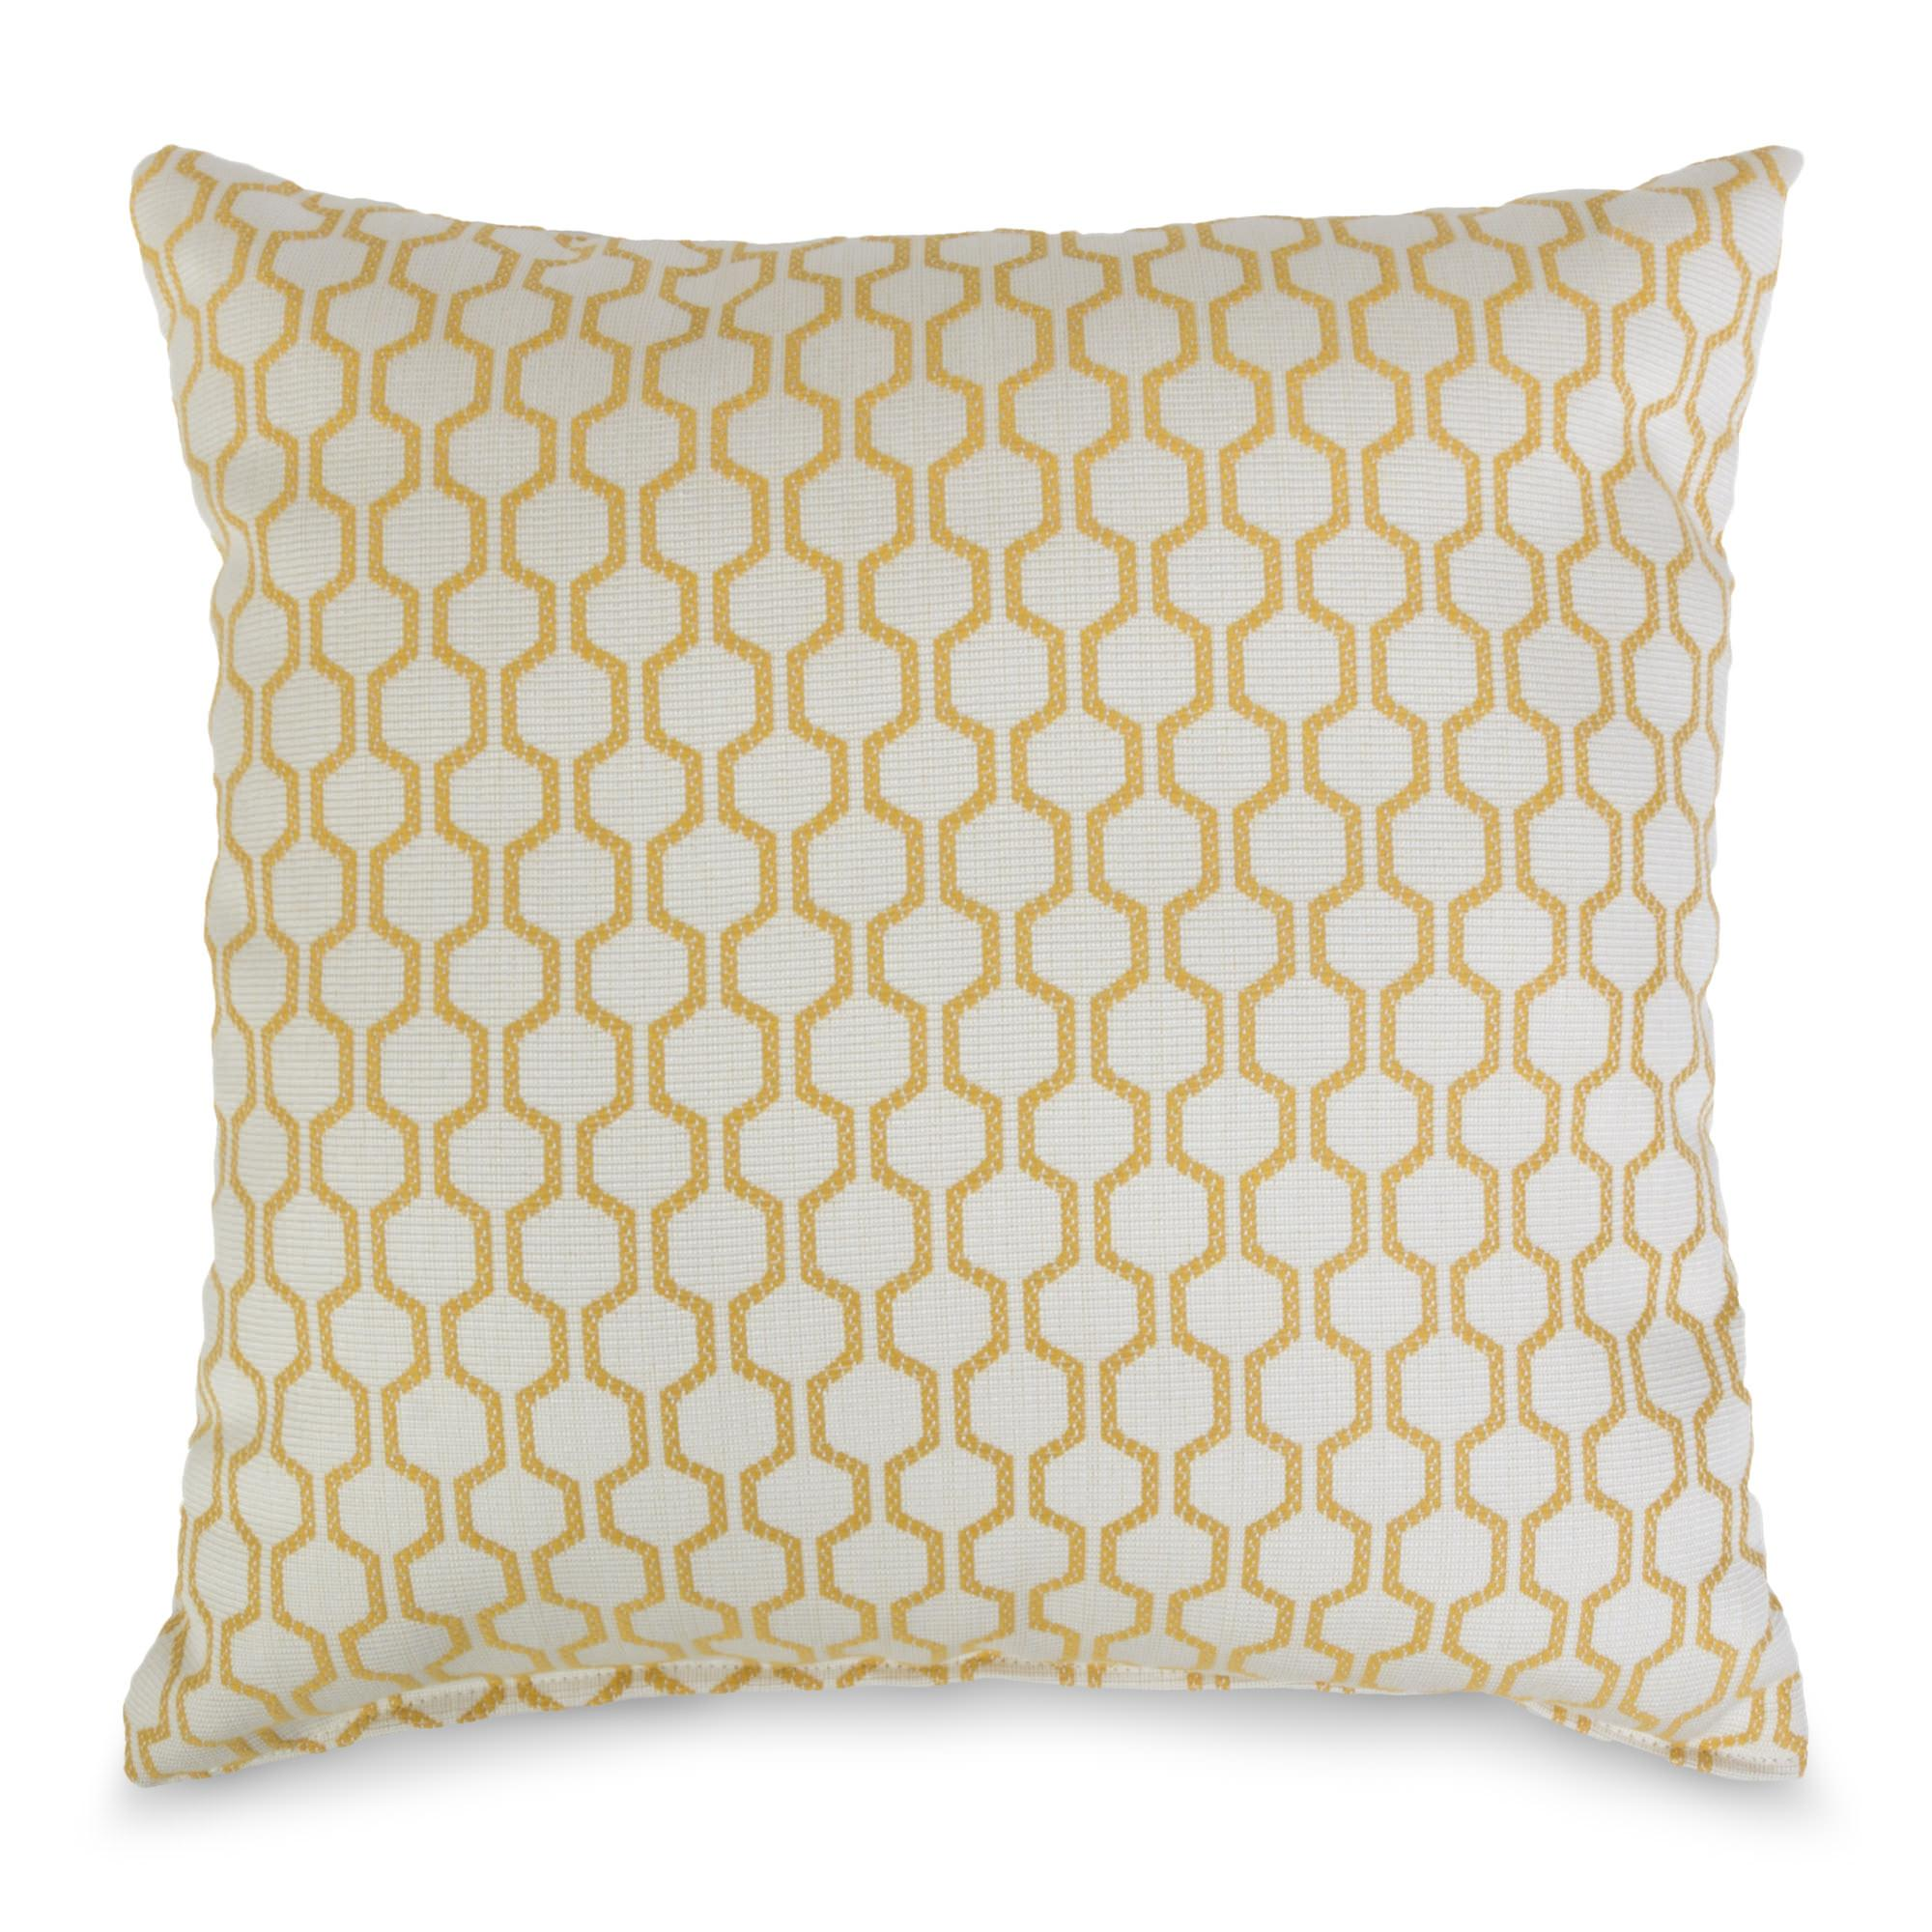 Prism Citrus Outdoor Throw Pillow  SKU BSQPRK  DFOHome